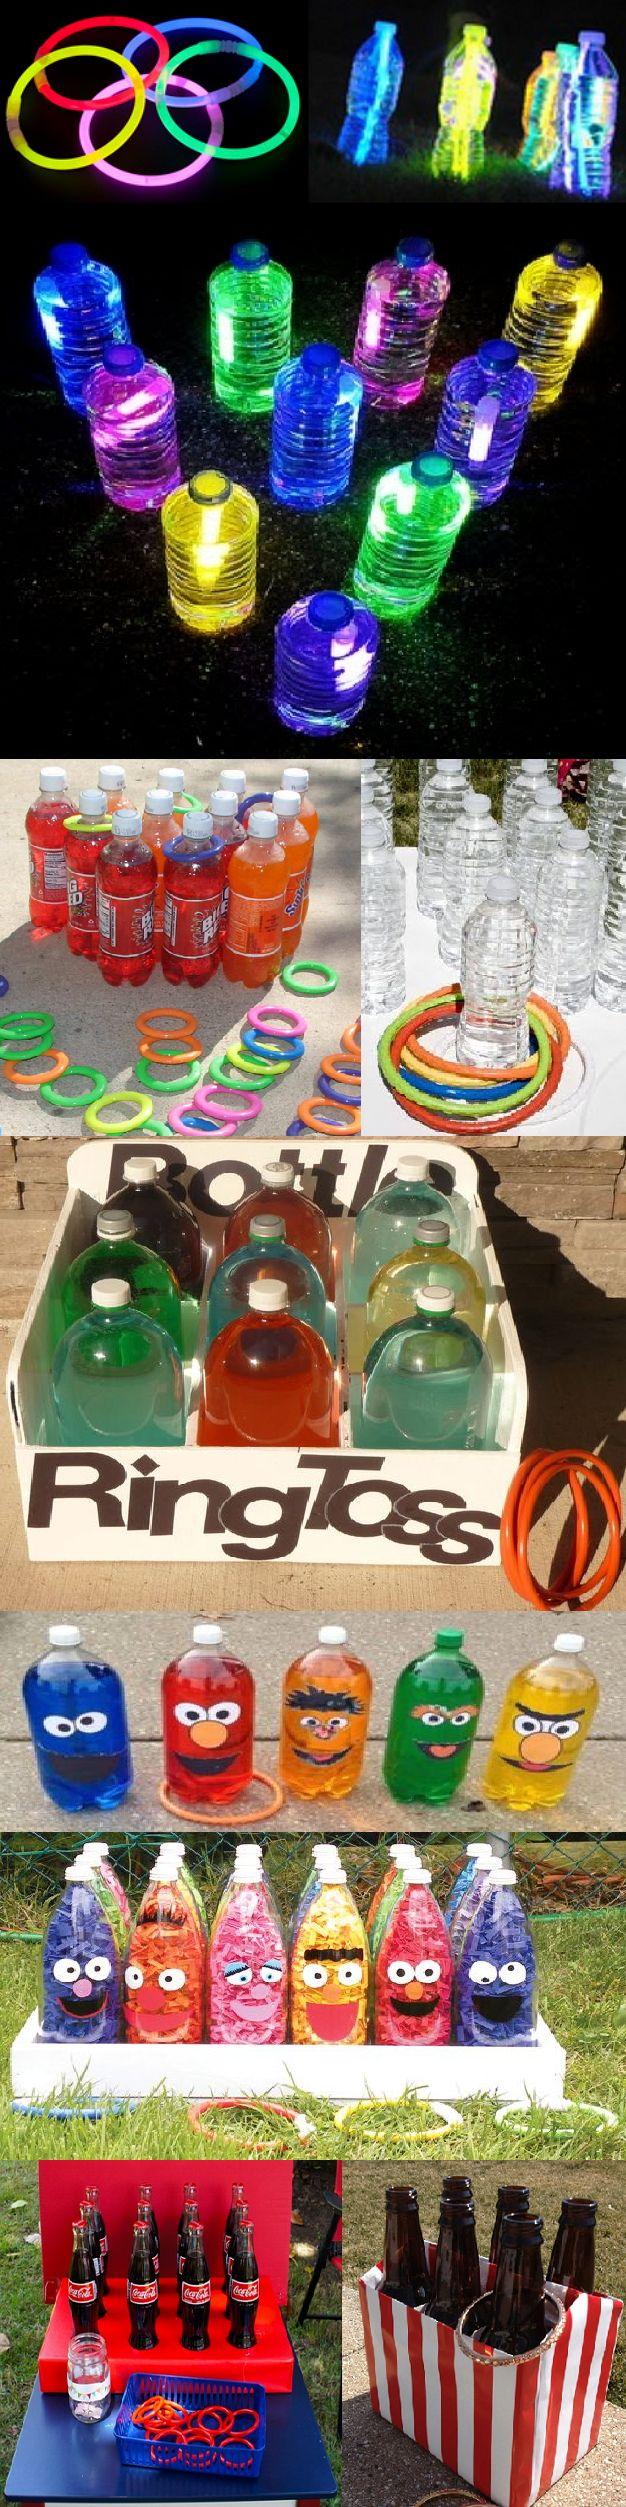 "GLOW IN THE DARK & REGULAR RING TOSS GAME: 16 oz, 1 liter, or 2 liter soda, juice, or water bottles-Clean, remove labels, & fill with water. Set bottles in a shoe box or triangle form & use 3""-5"" (or best size) plastic toss rings to play. FOR NIGHT PLAY: Snap & place glow sticks in bottles & tighten lids. Instead of toss rings, use glow in the dark bracelets or connectors to connect glow sticks to create a ring & tape to secure. *Alternate:Leave pop unopened & if you ring it you get it!"